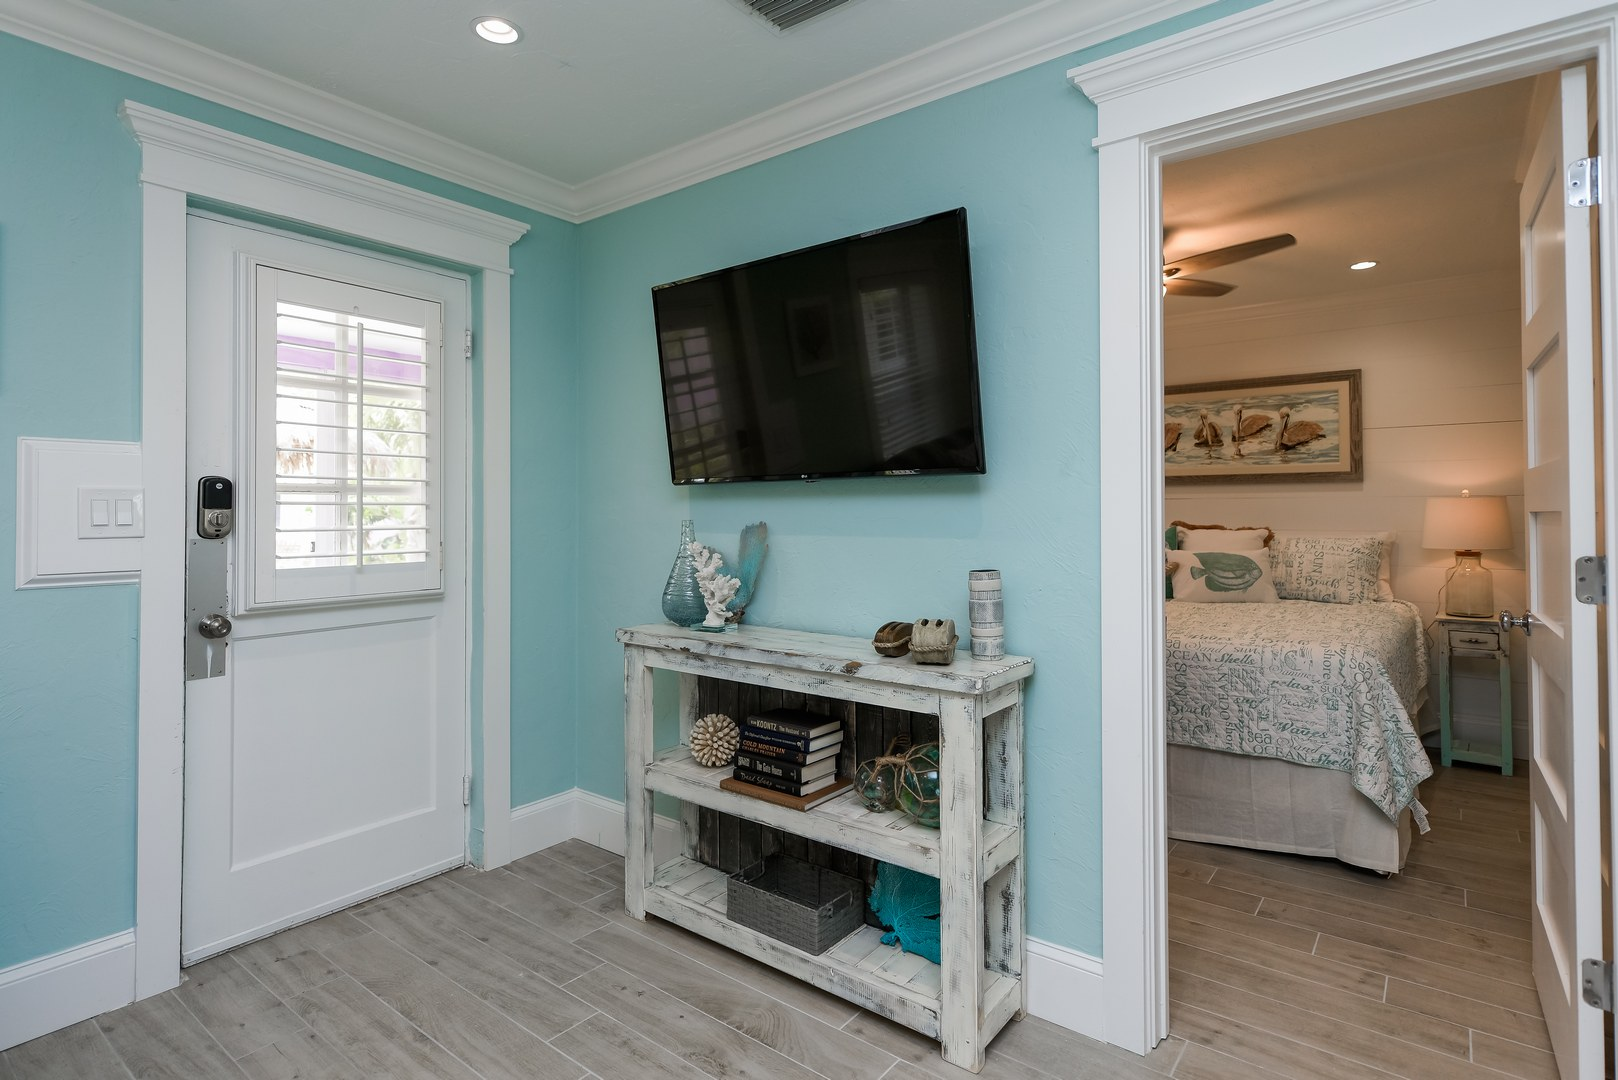 Entrance to the Unit, HDTV in Living Room, Access to Bedroom